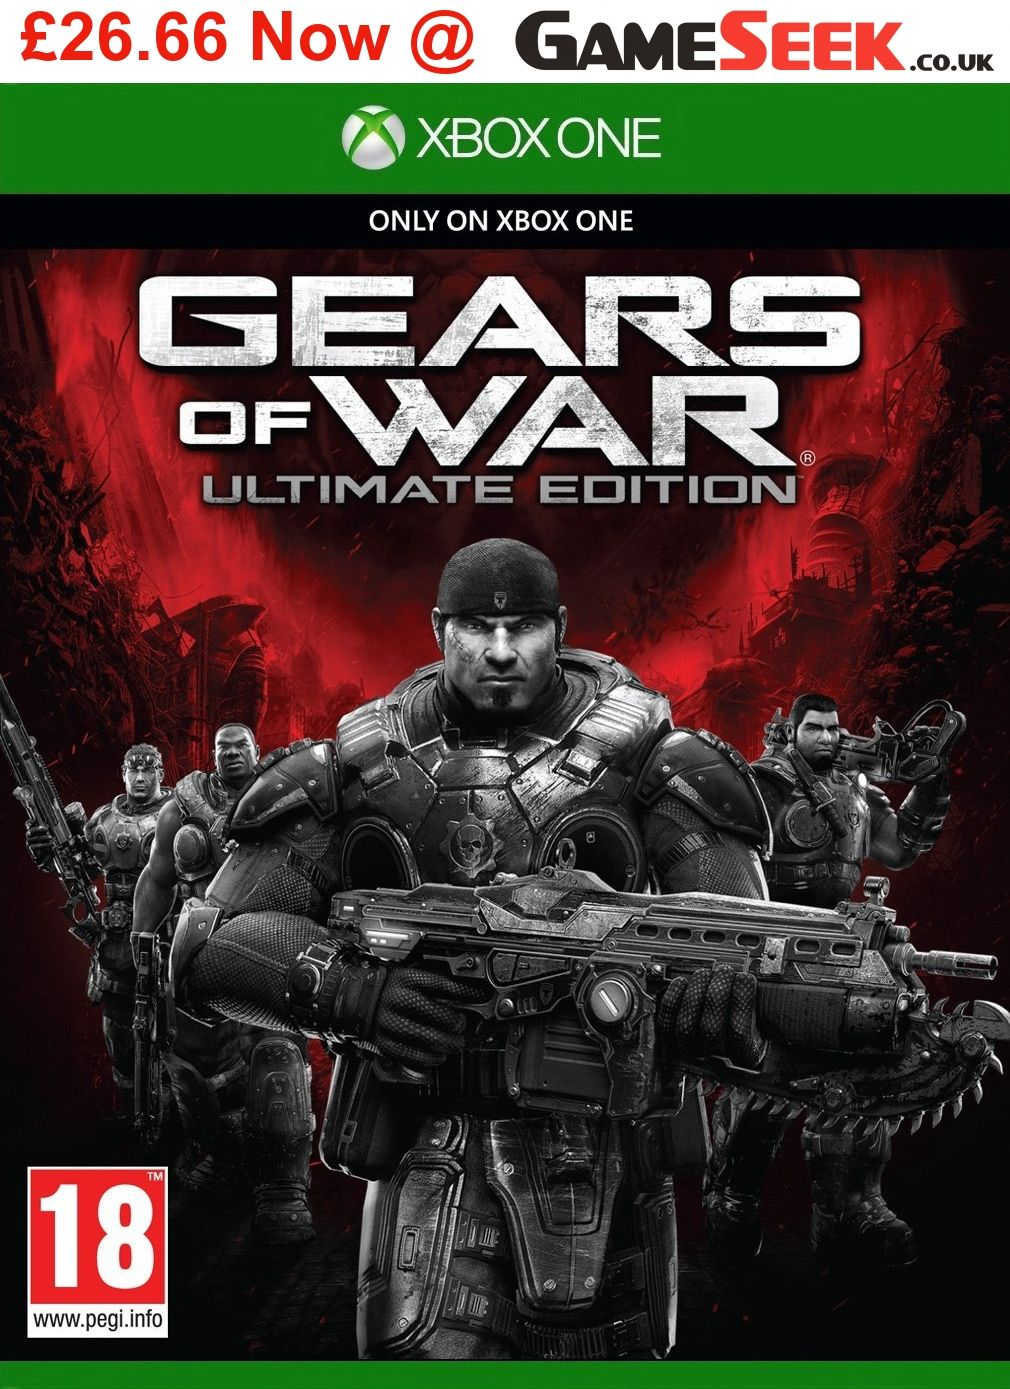 Xbox One Game Bundle 4 Games Gears Of War Ultimate Edition Disc Only Project Cars 2 Mad Max Mafia 3 Xbox One Games Game Bundle Xbox One